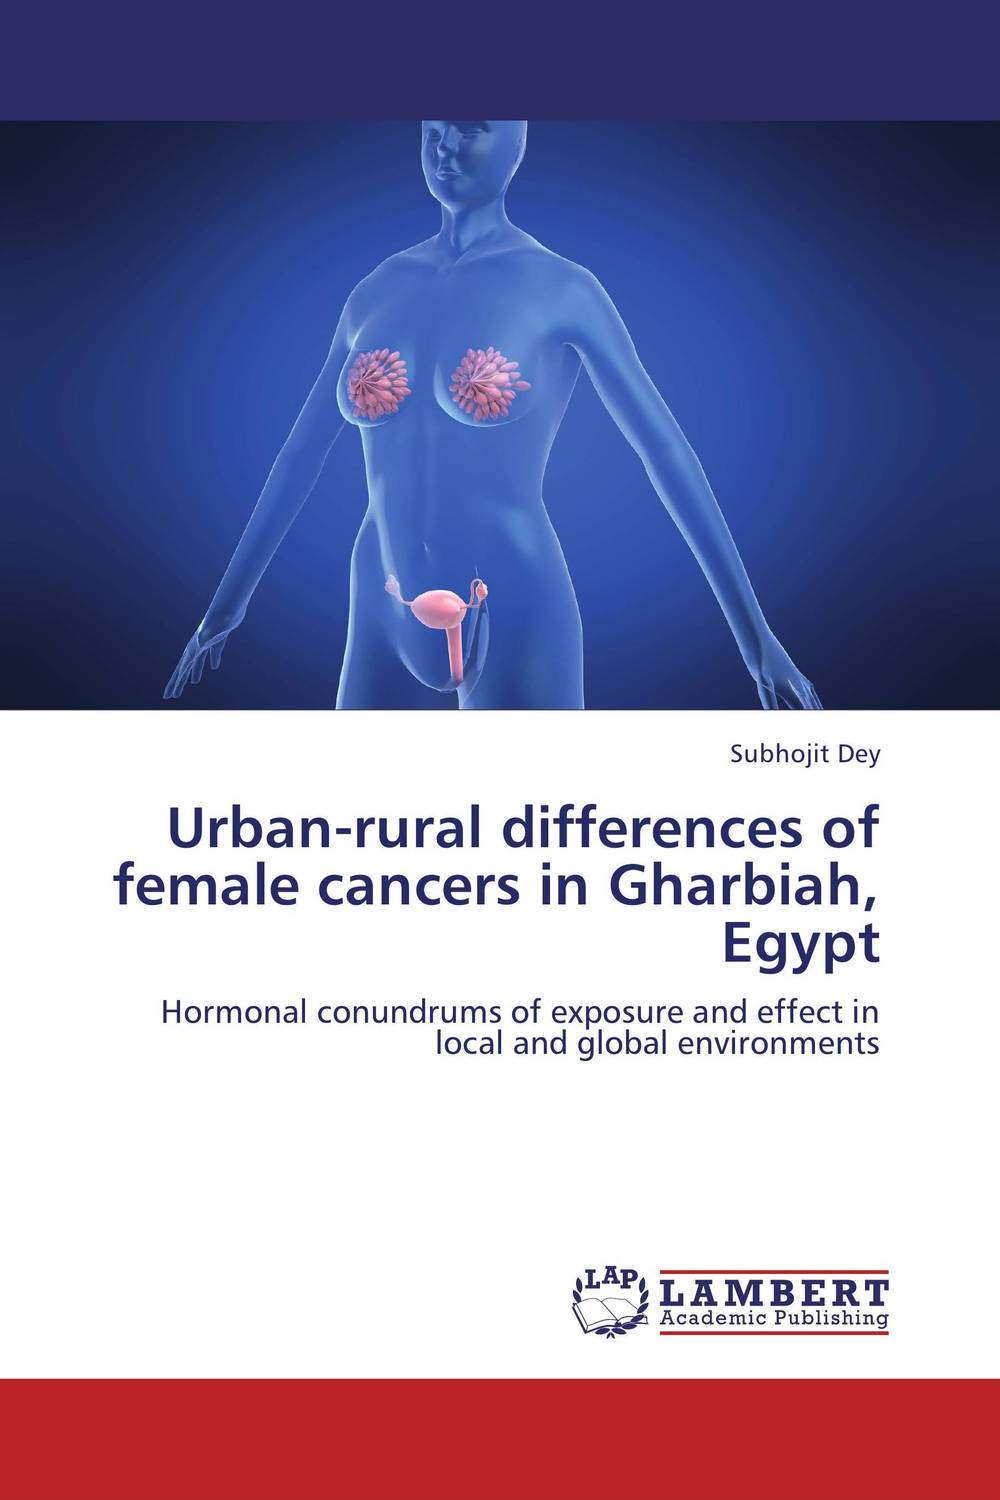 Urban-rural differences of female cancers in Gharbiah, Egypt viruses cell transformation and cancer 5